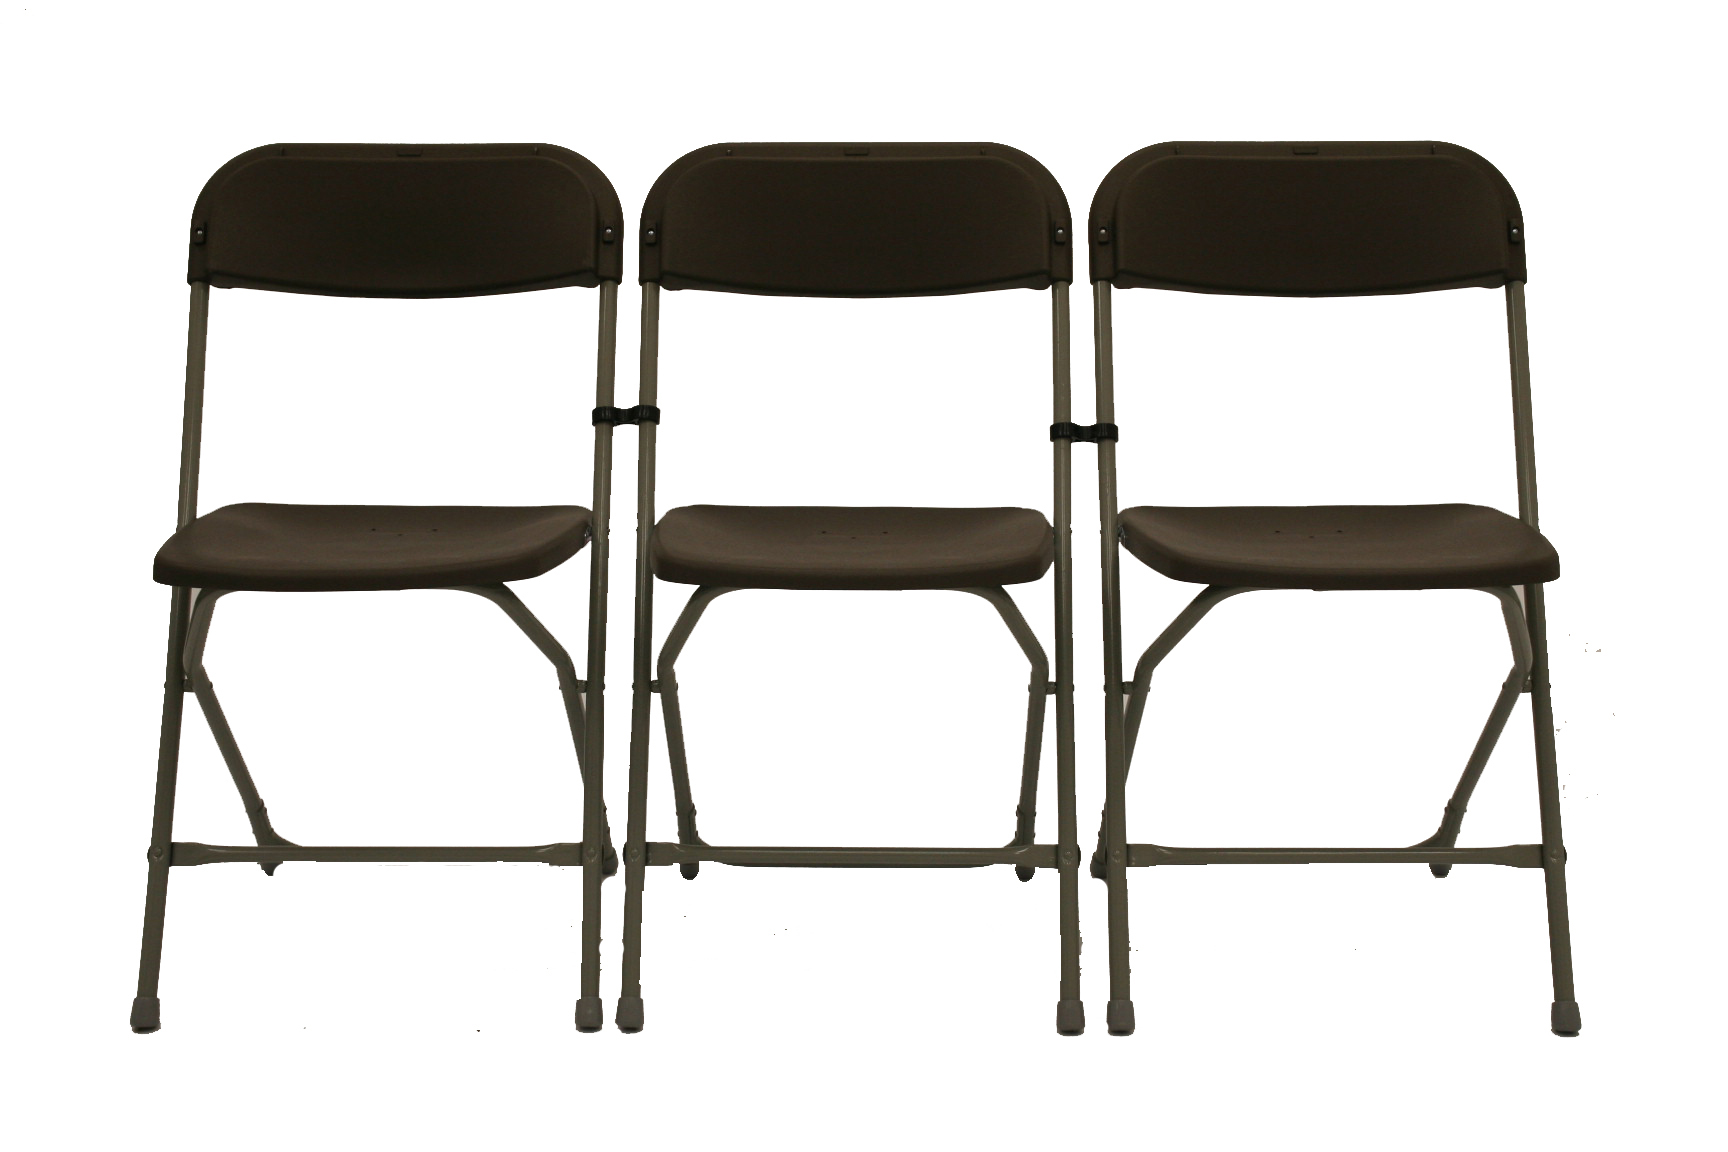 Brown Folding Chairs for Event Venues, Schools, Universities - BE Furniture Sales